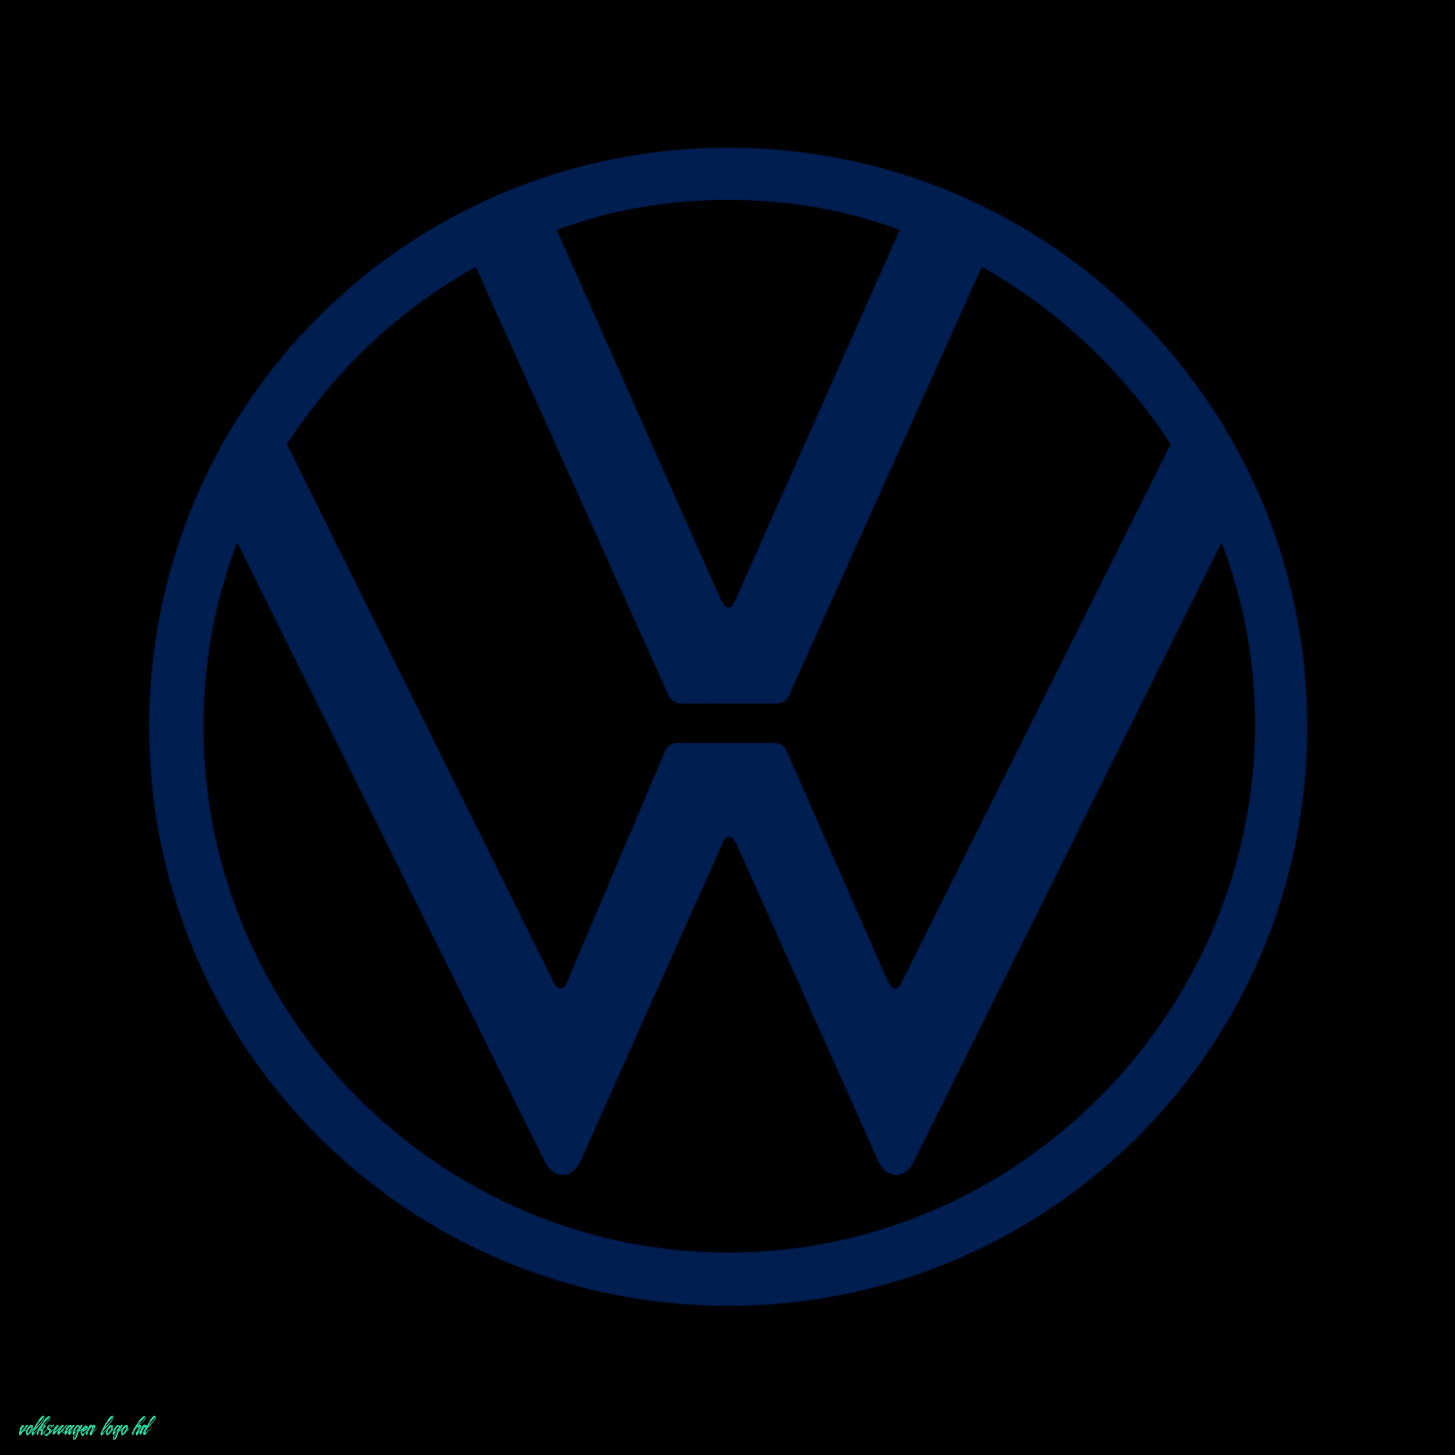 Why Is Everyone Talking About Volkswagen Logo Hd Volkswagen Logo Hd In 2020 Volkswagen Logo Volkswagen Wallpaper